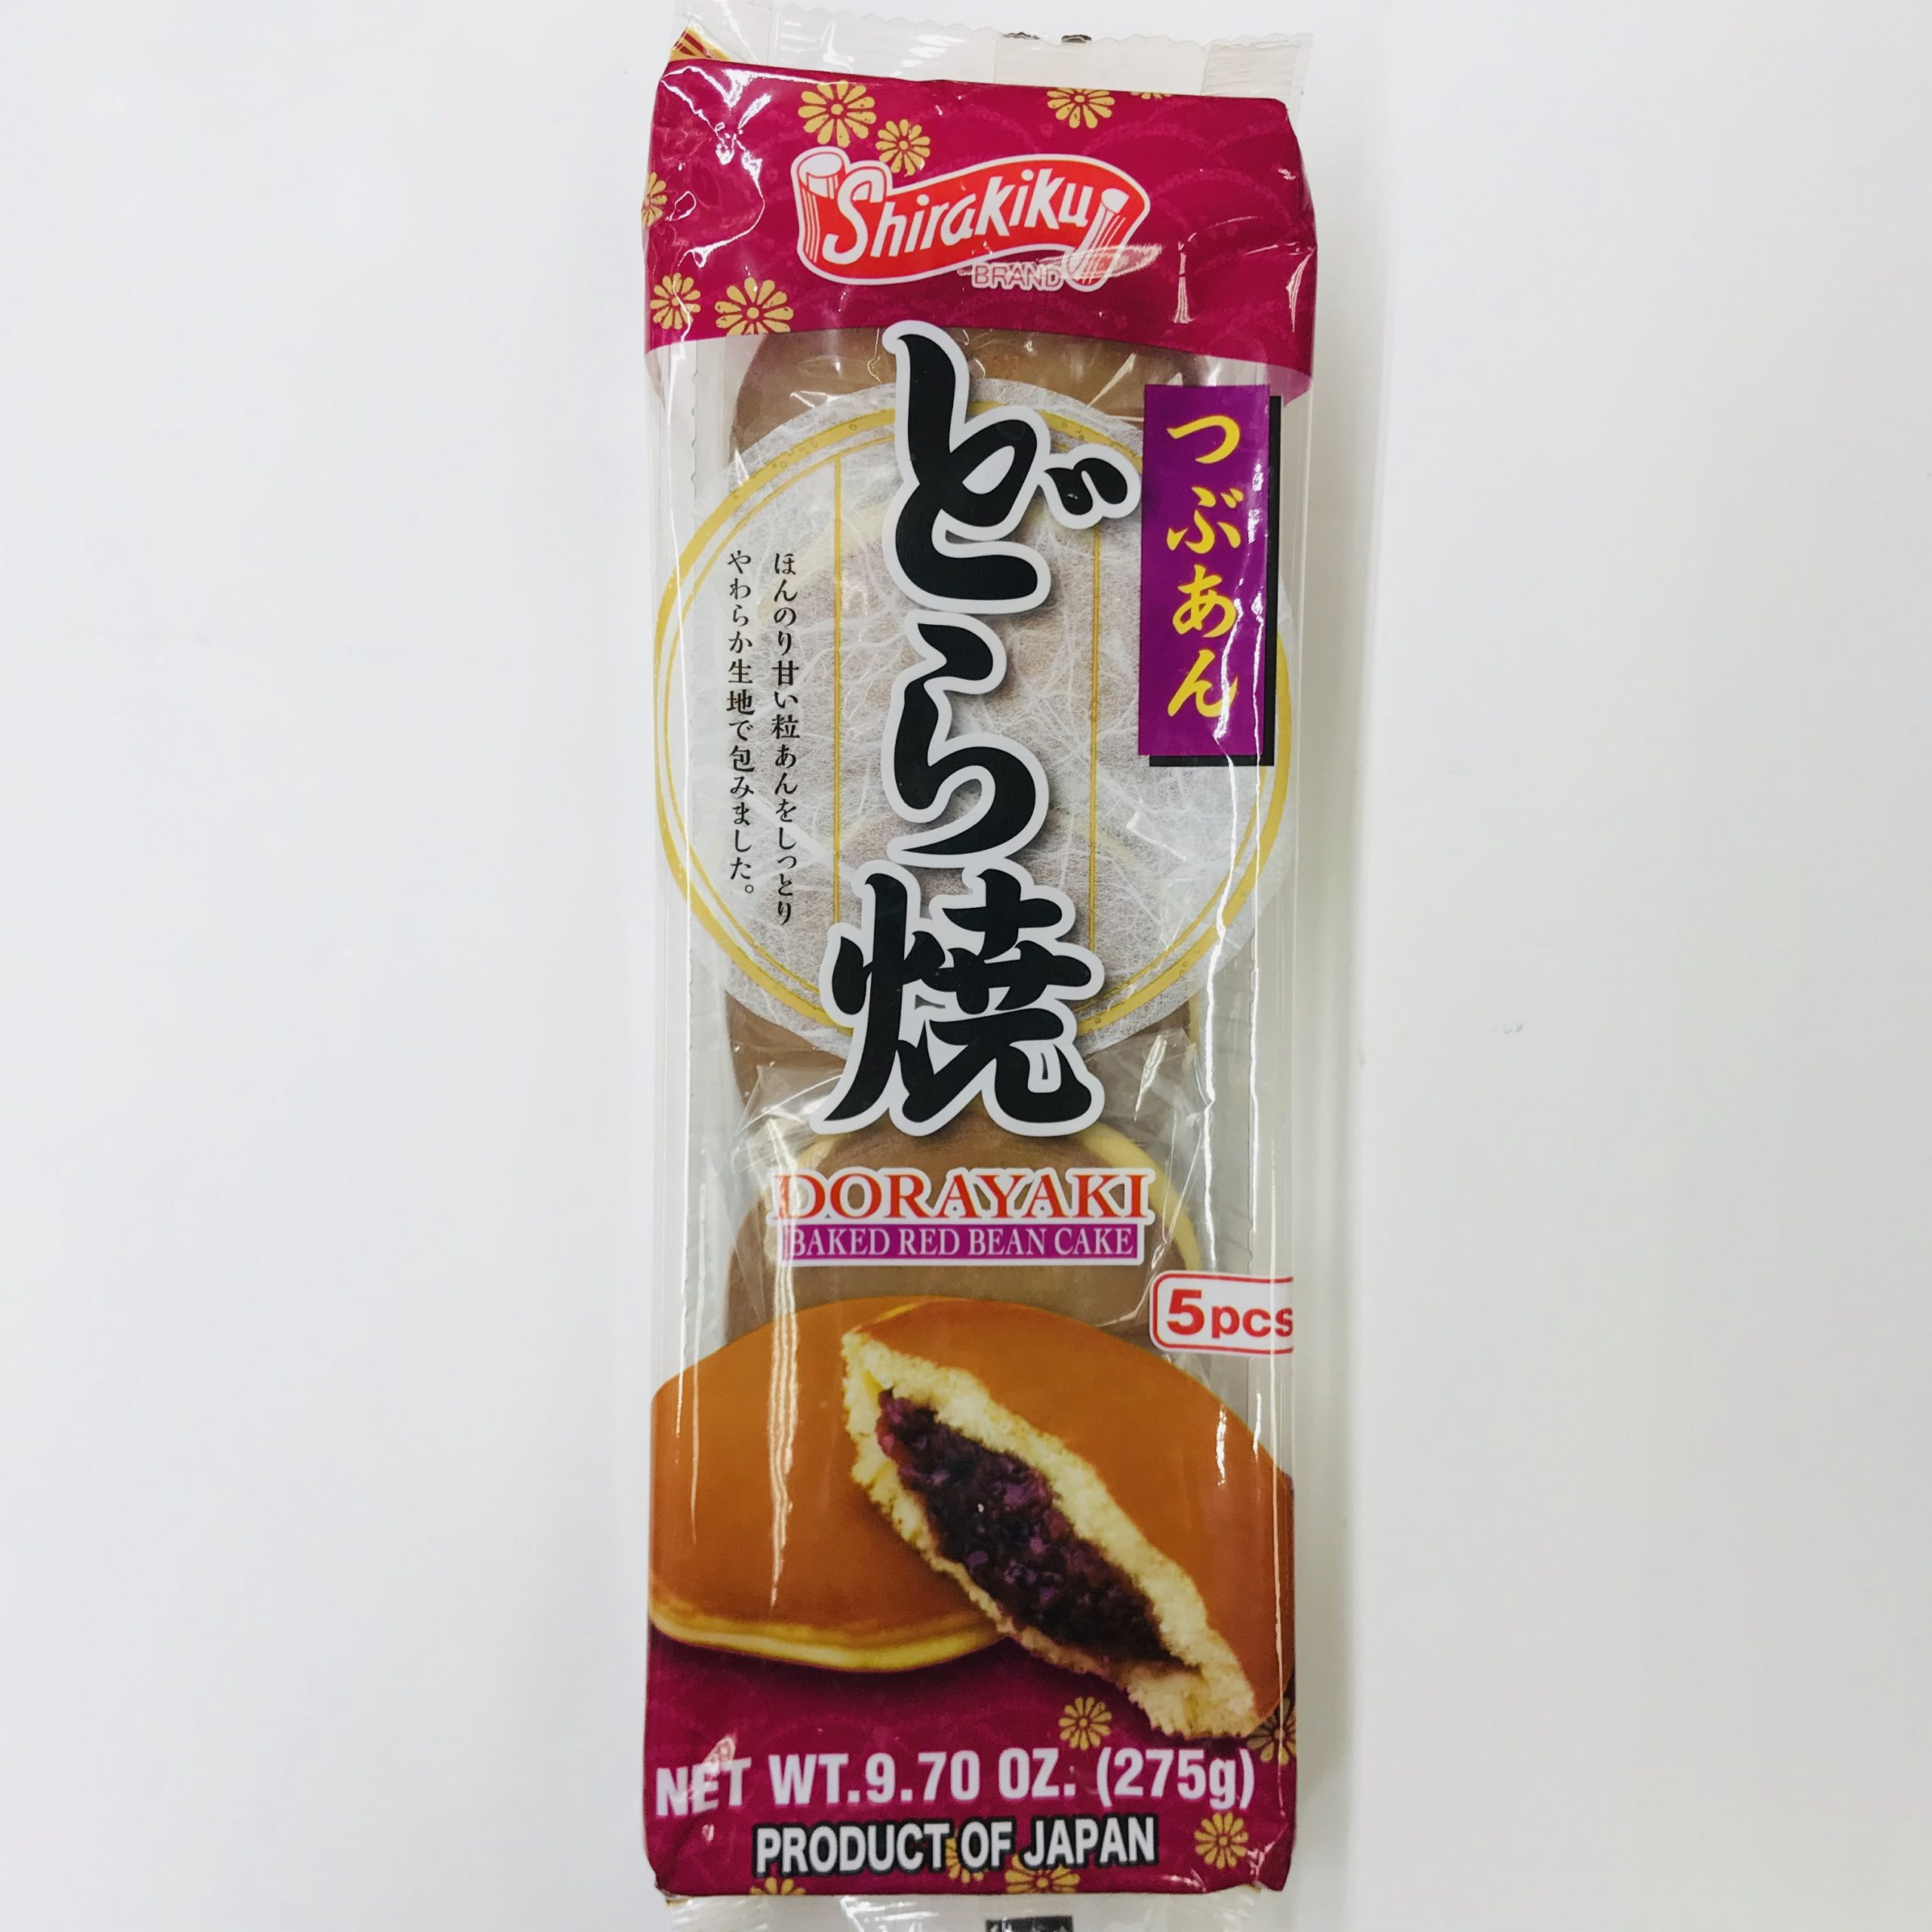 Shirakiku Dorayaki Red Bean 红豆沙烧饼 5pcs/9.7oz